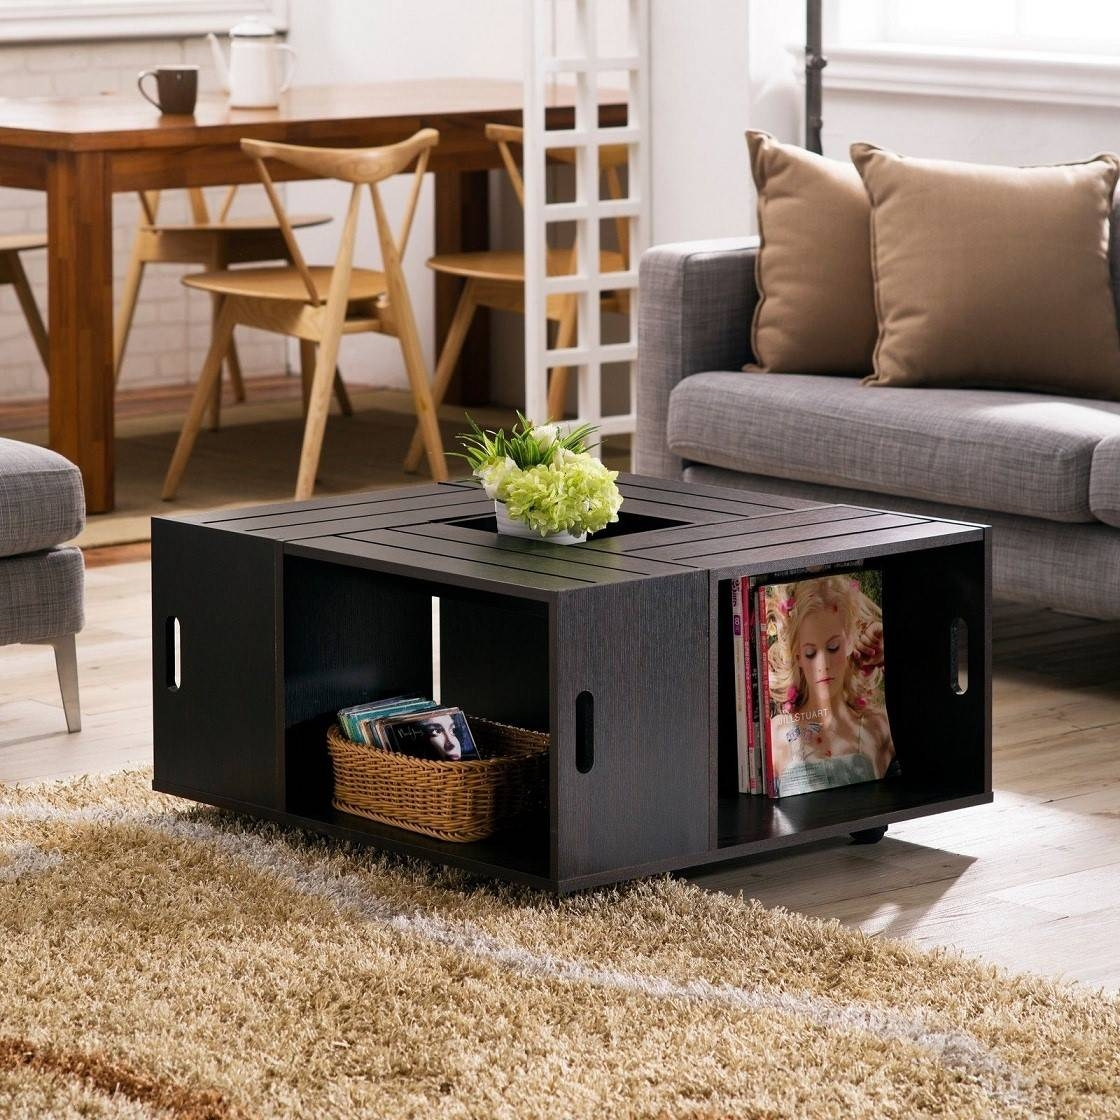 Cool Coffee Tables On Modern Coffee Table And Trend Small Coffee within Round Coffee Tables With Storages (Image 16 of 30)